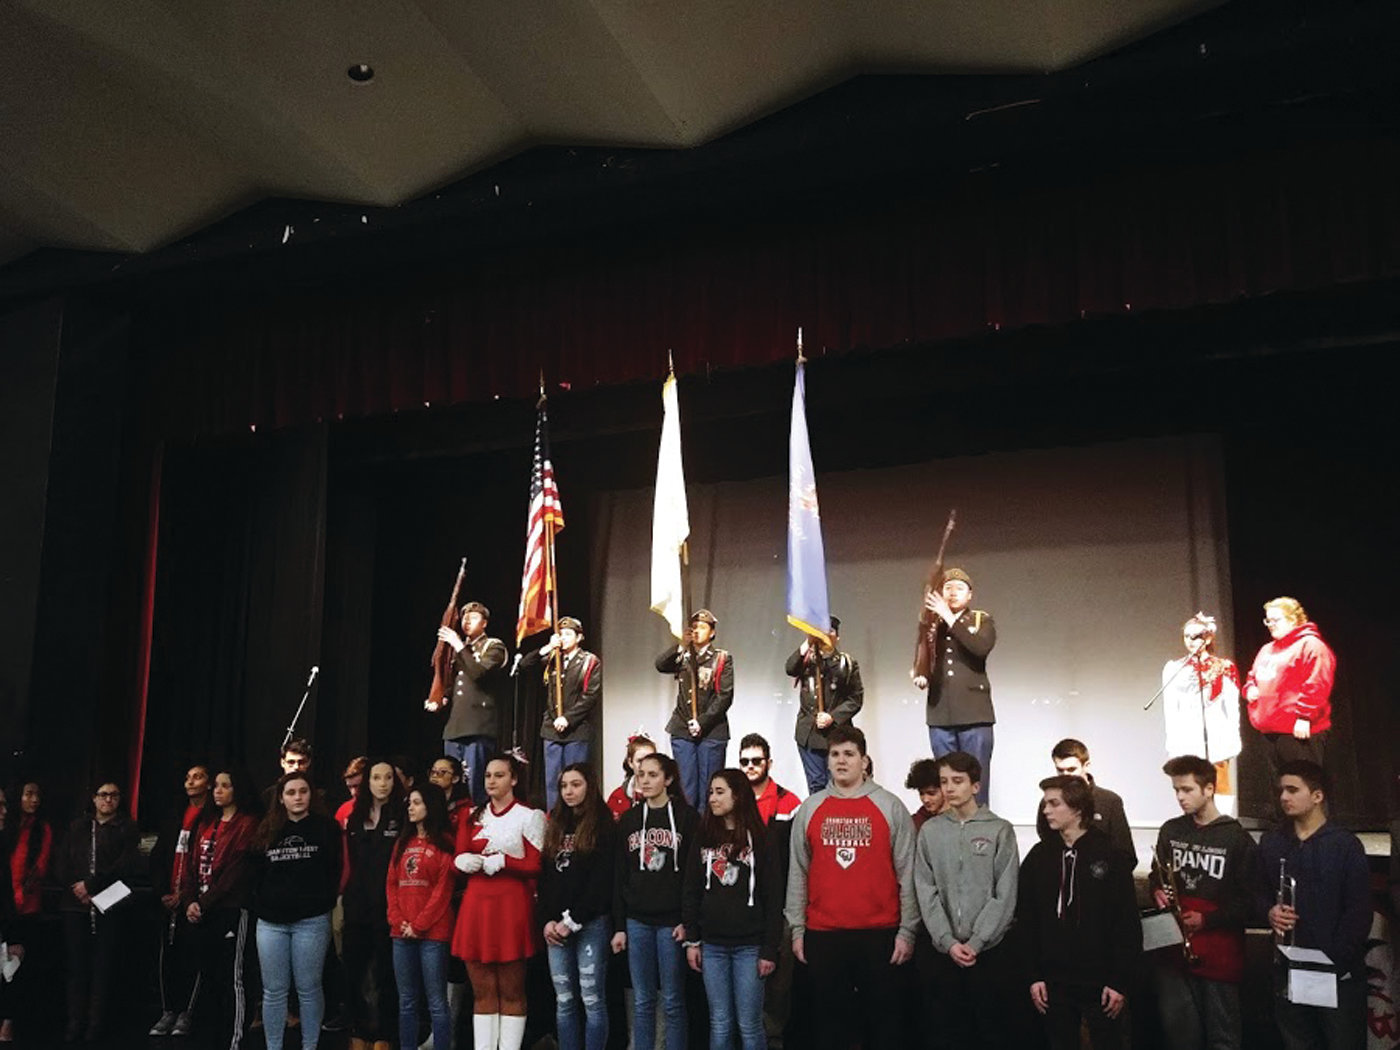 ALL ARE REPRESENTED: Opening ceremonies featured students from Cranston East, Cranston West and CACTC, including athletes, band and choir members, students from the Best Buddies program, Westernettes and Falconettes and members of the drama program.